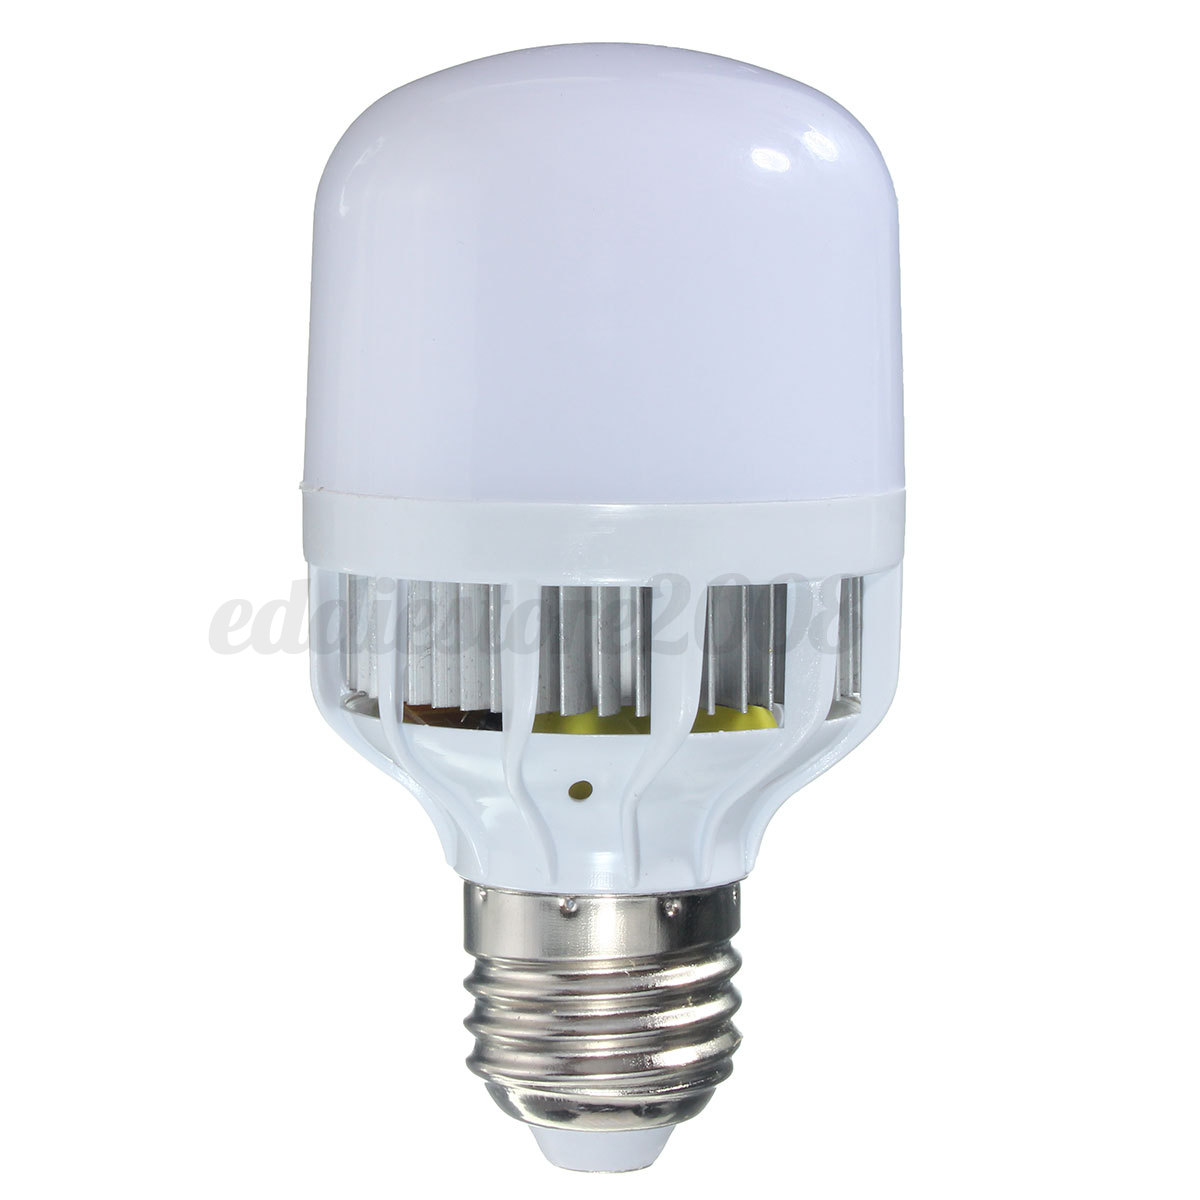 e27 b22 10w 18w 24w 36w 5730 smd led globe light blub lamp white bright 220v ebay. Black Bedroom Furniture Sets. Home Design Ideas